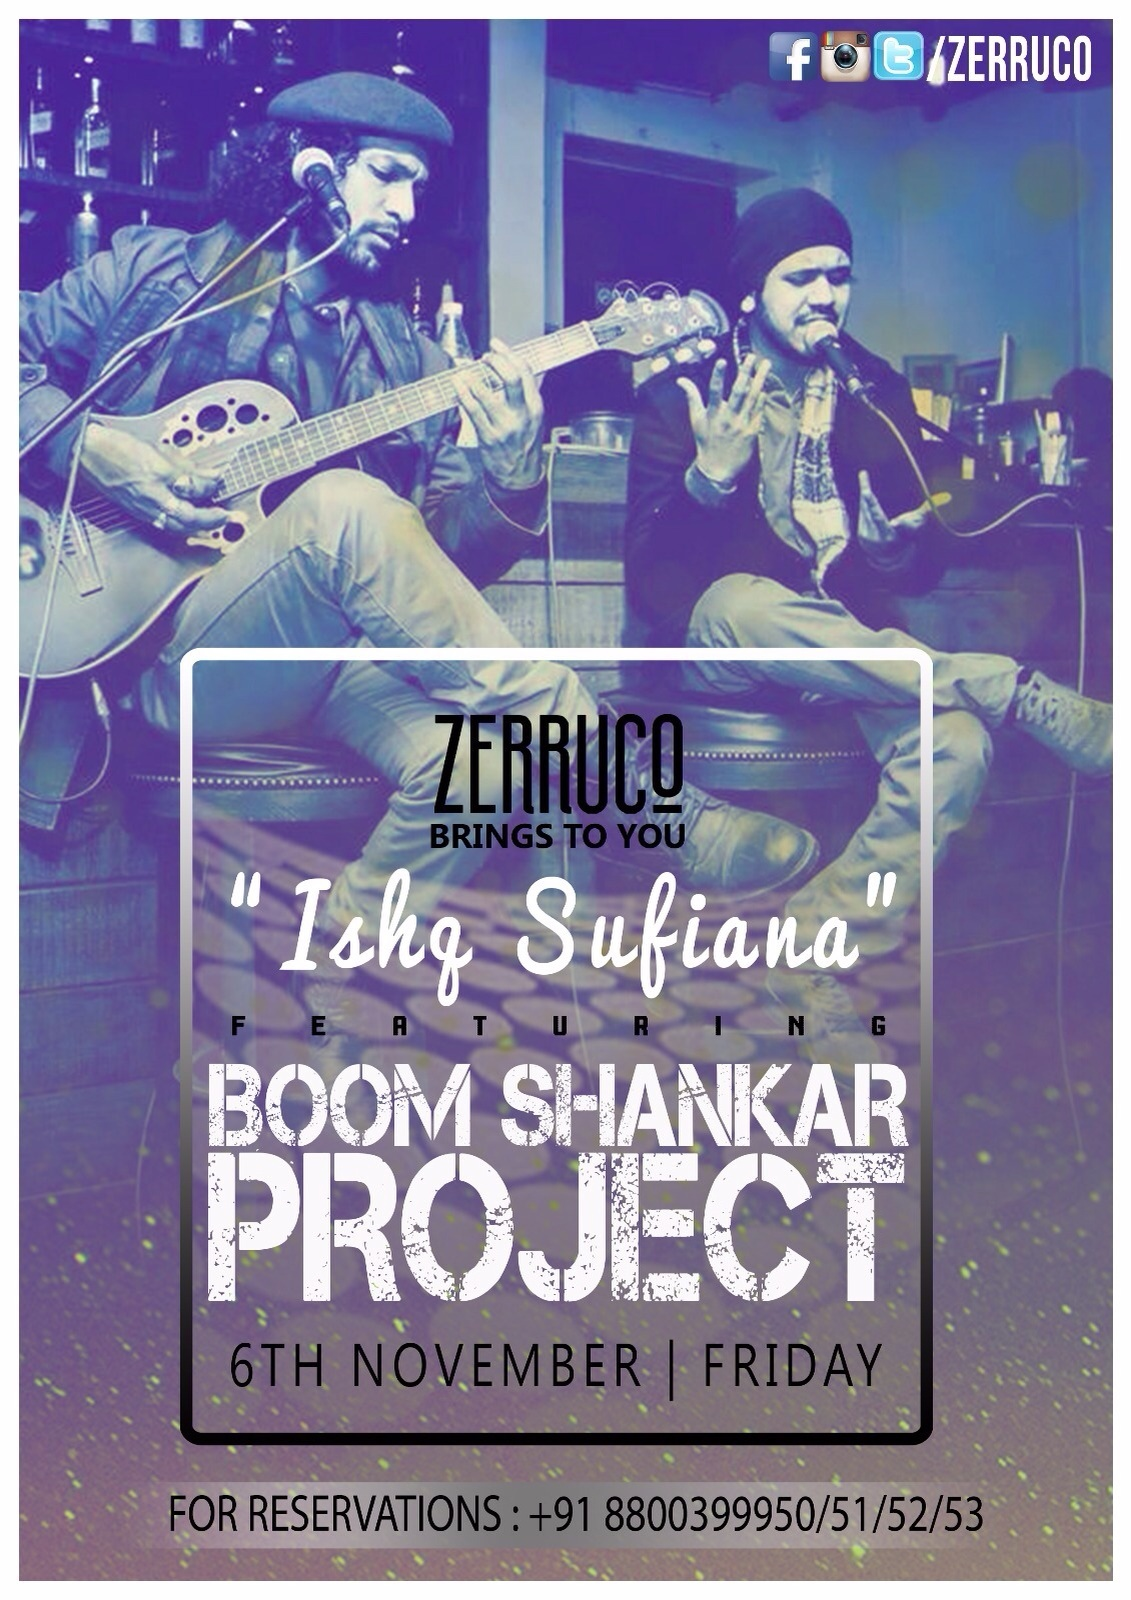 Ishq Sufiana featuring BOOM SHANKAR PROJECT @ Zerruco | 6th Nov | 9pm onwards